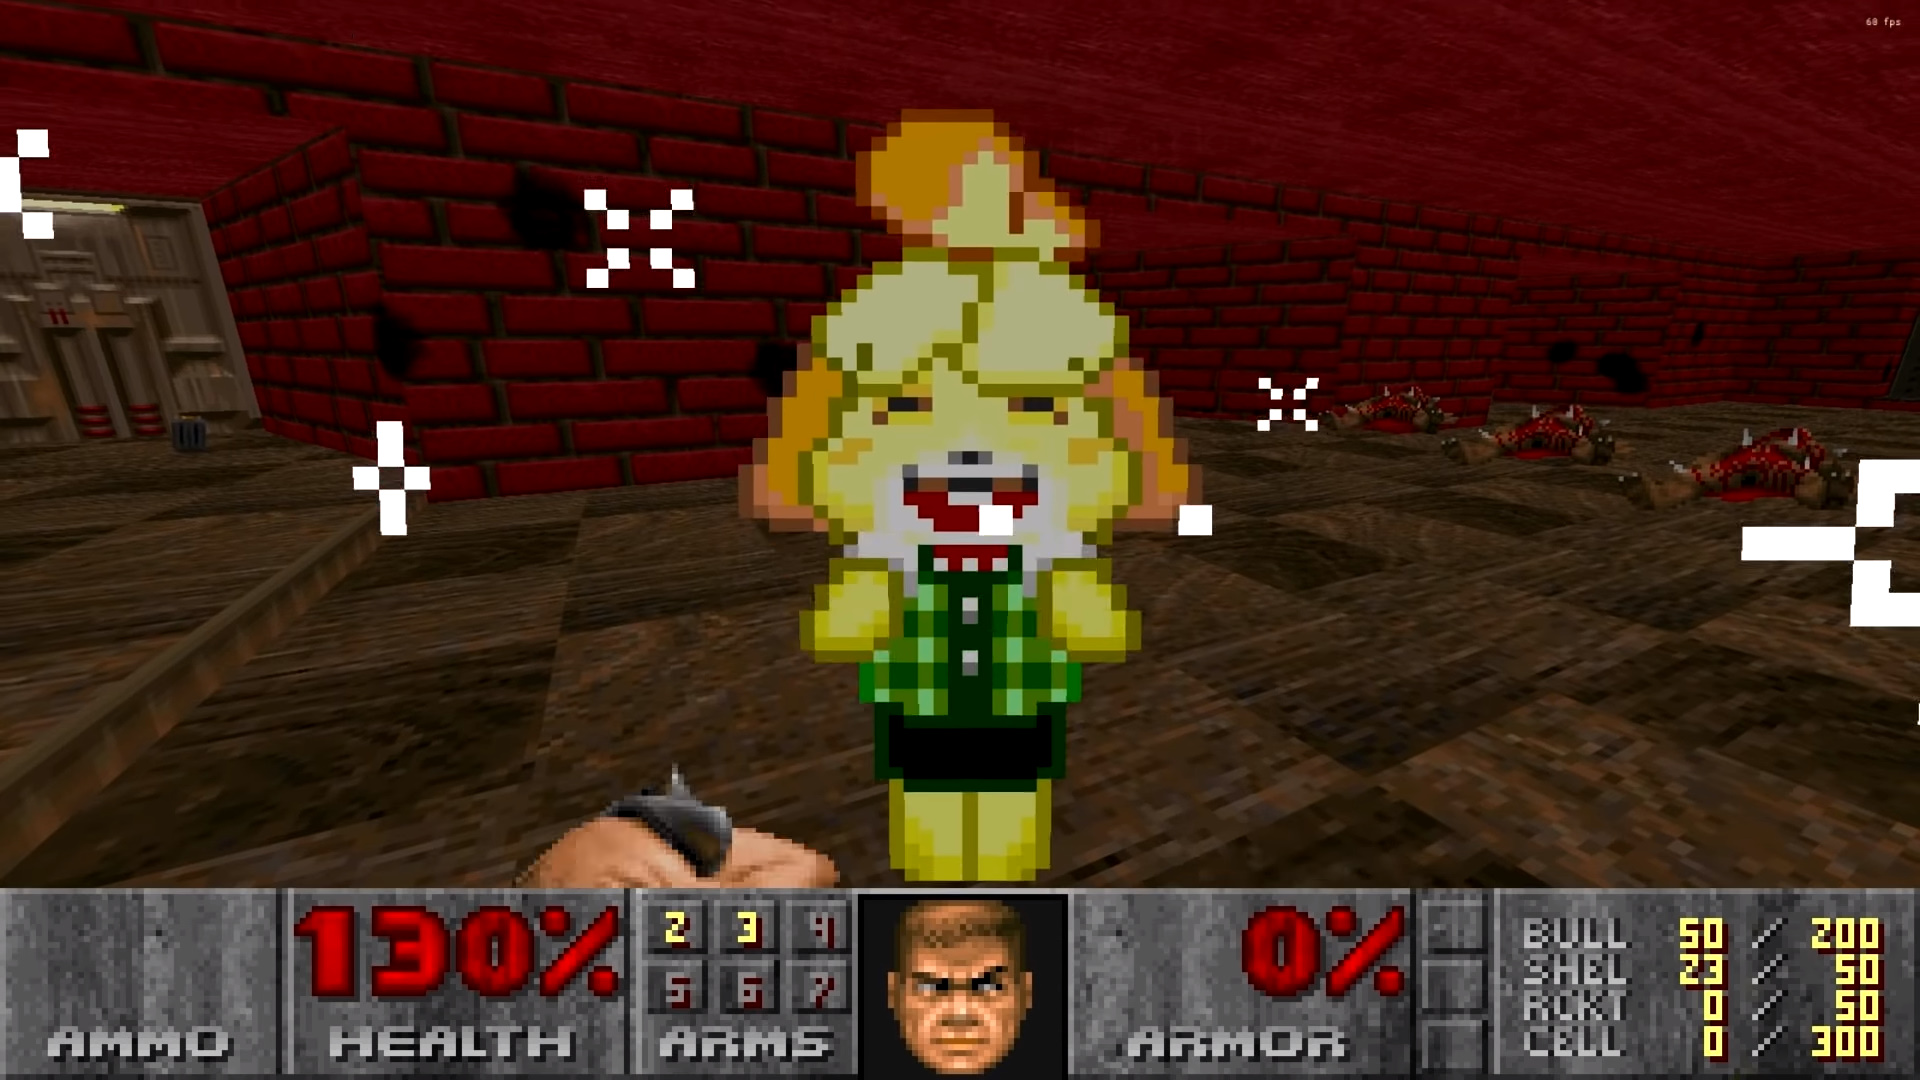 Animal Crossing S Isabelle Joins The Slayer In This Doom 2 Mod